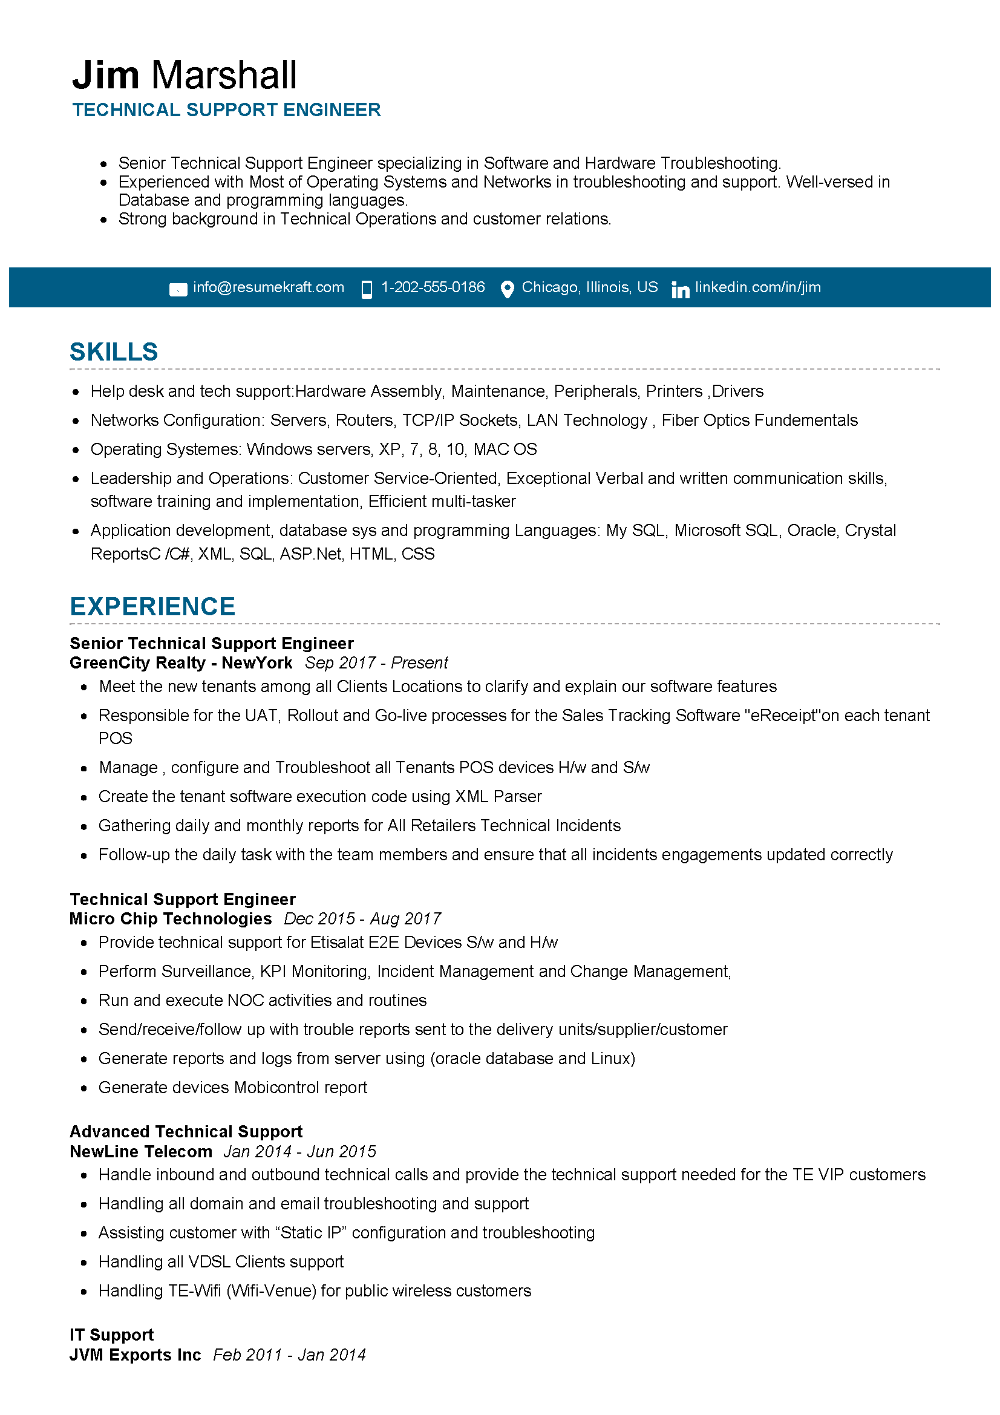 100 Professional Resume Samples For 2020 Resumekraft Resume Best Resume Format Professional Resume Samples